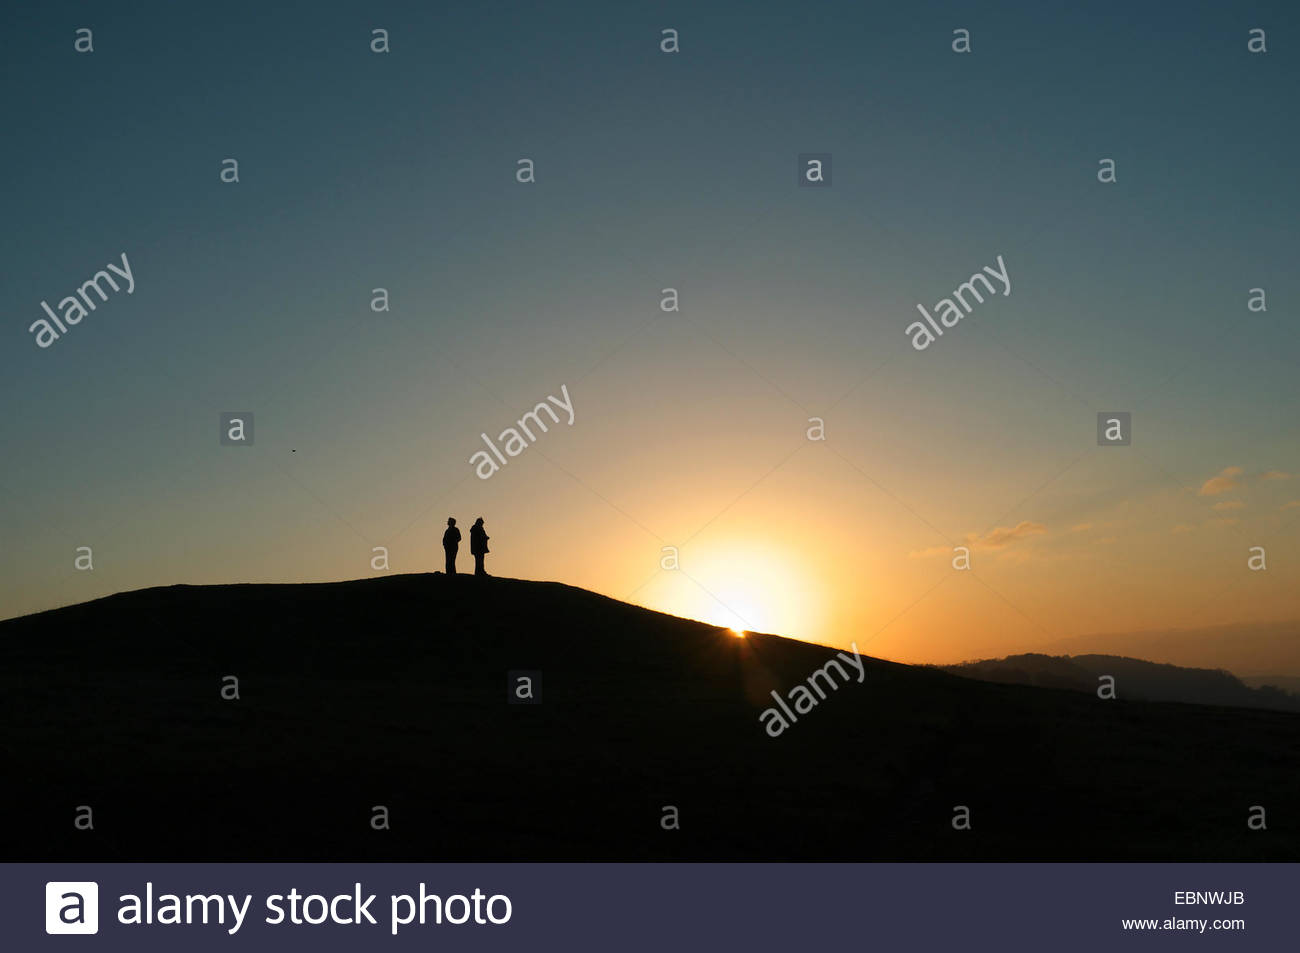 Stroud, Gloucestershire, UK. 3rd December 2014. UK Weather: Two people enjoy watching the sun going down from this Stock Photo